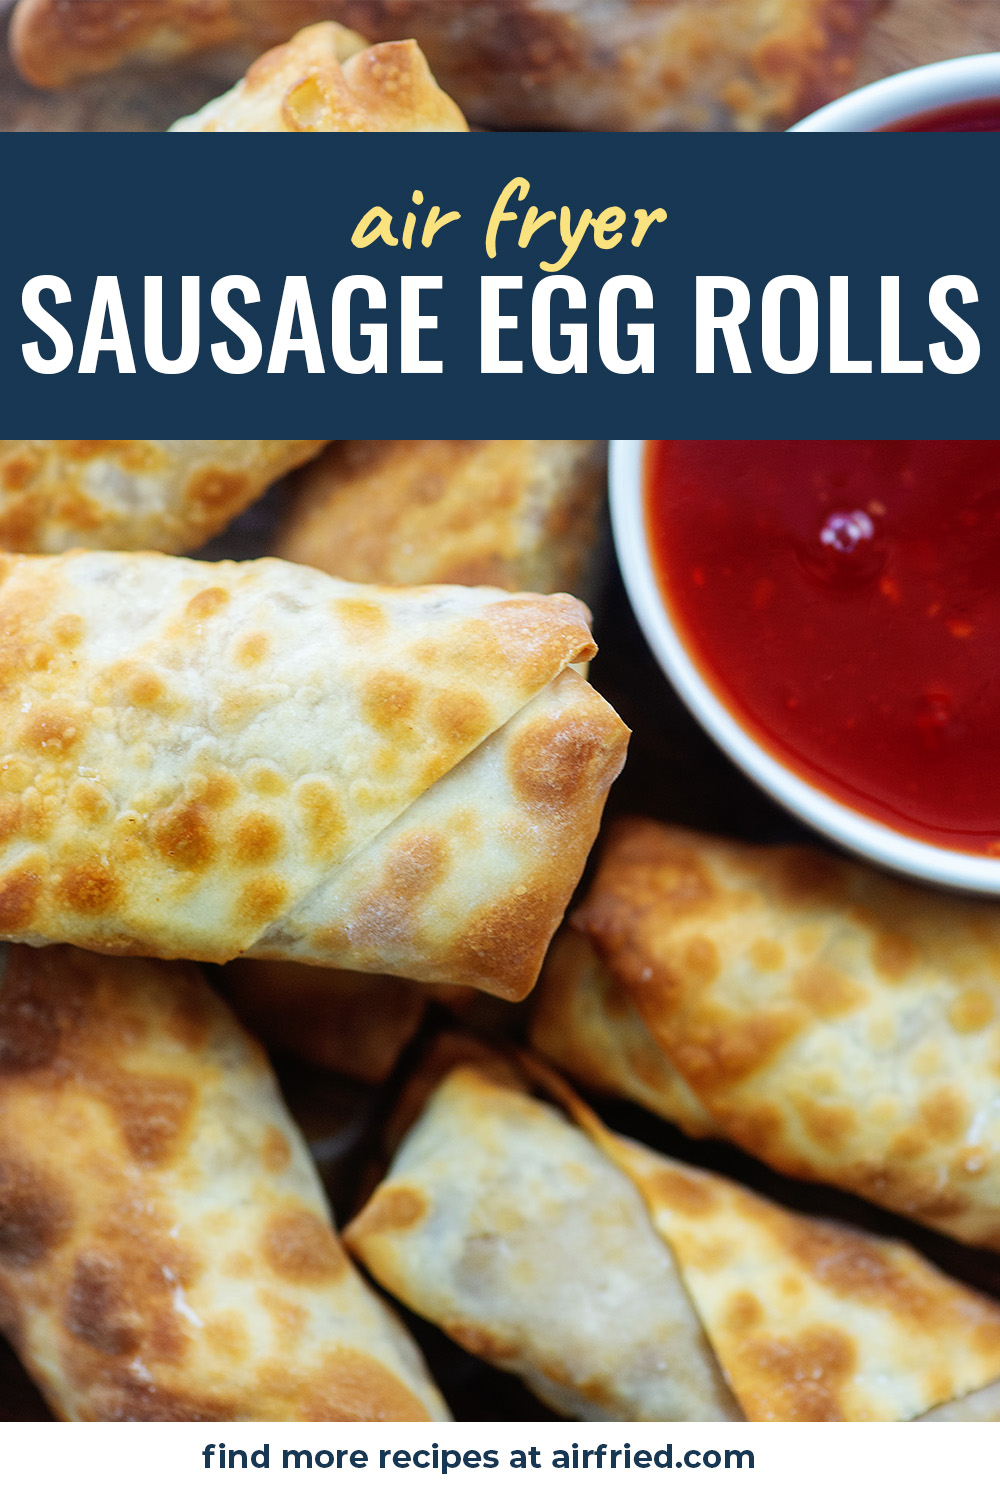 These sausage egg rolls are a perfect snack for a gathering.  They are delicious in a sweet and sour dip! #eggrolls #homemade #airfryer